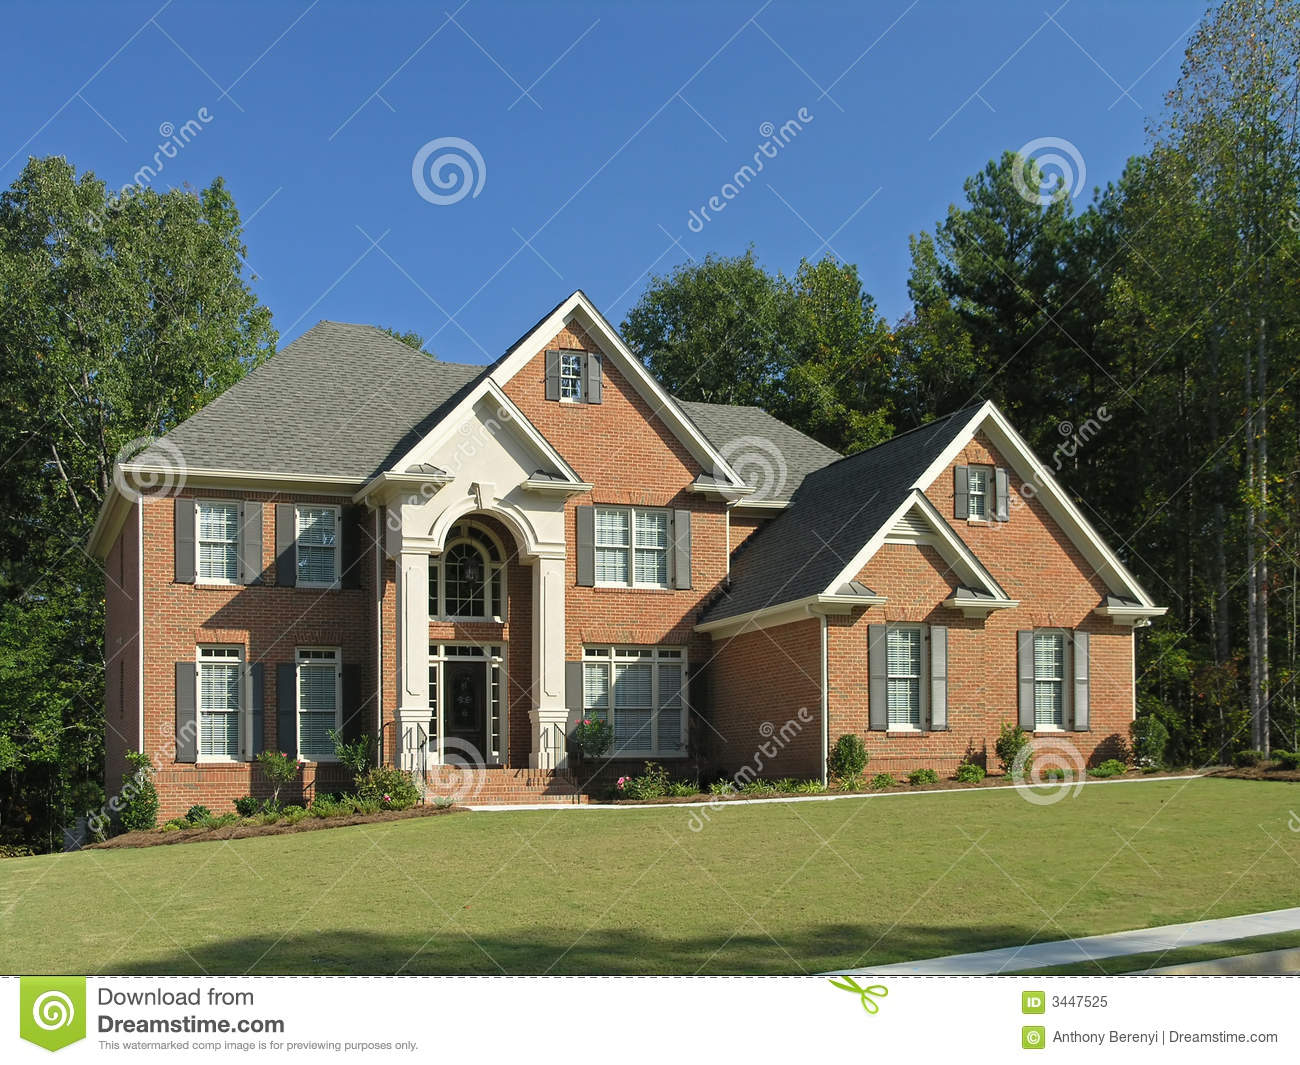 Luxury Home Exterior 10 Royalty Free Stock Photo Image